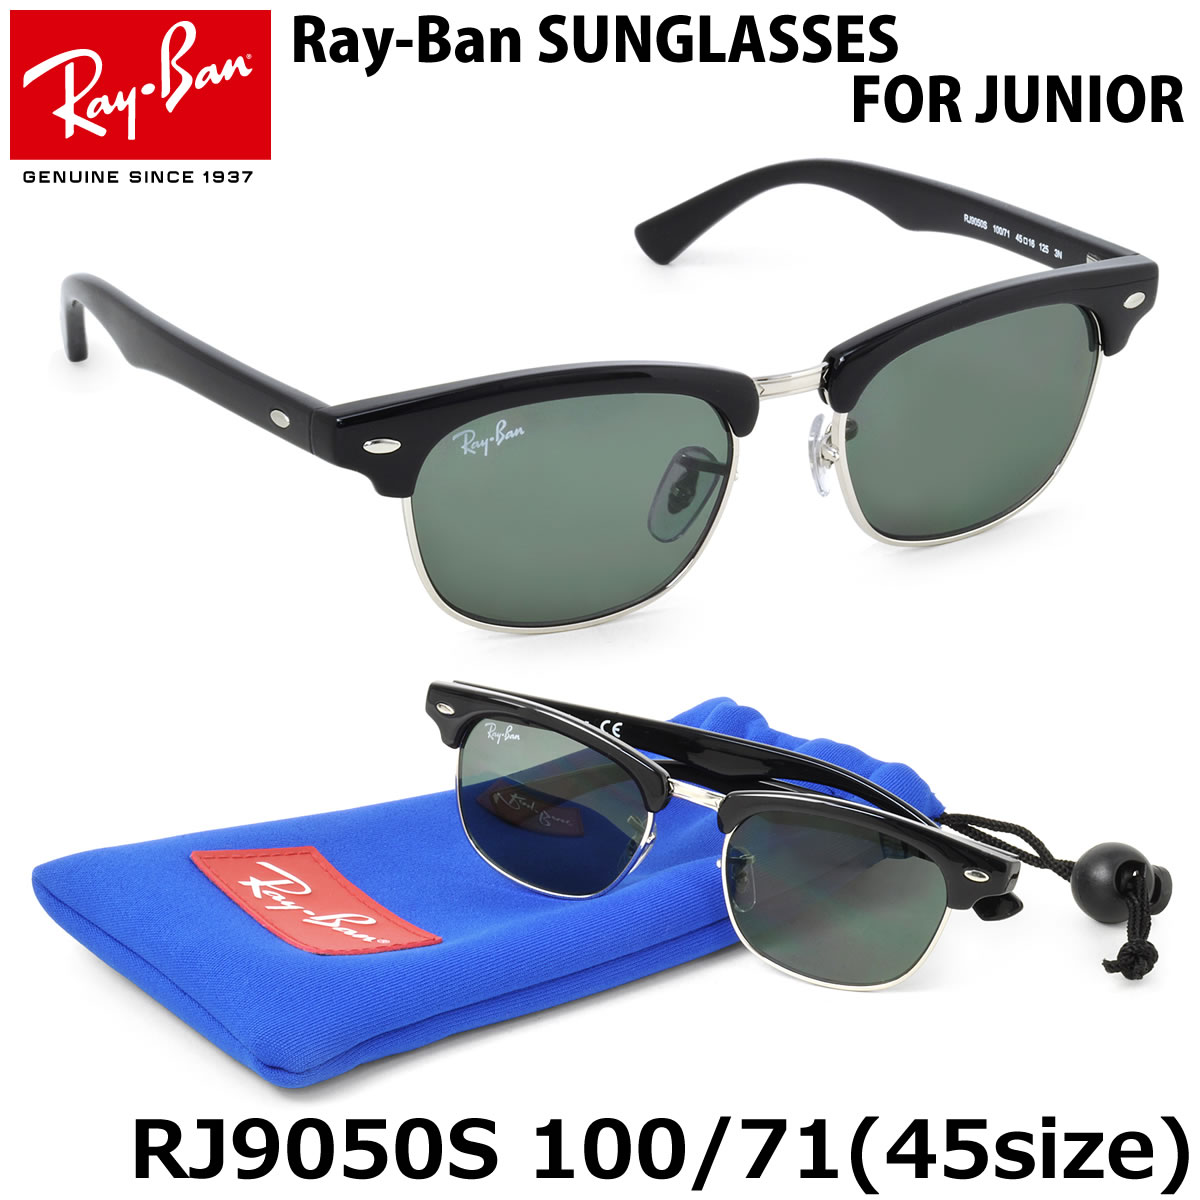 587bba6cbddd CLUBMASTER JUNIOR RJ9050S Youth specifications come up from extreme  popularity Ray-Ban sunglasses! If I wear matching Ray-Ban sunglasses in  parent and child ...